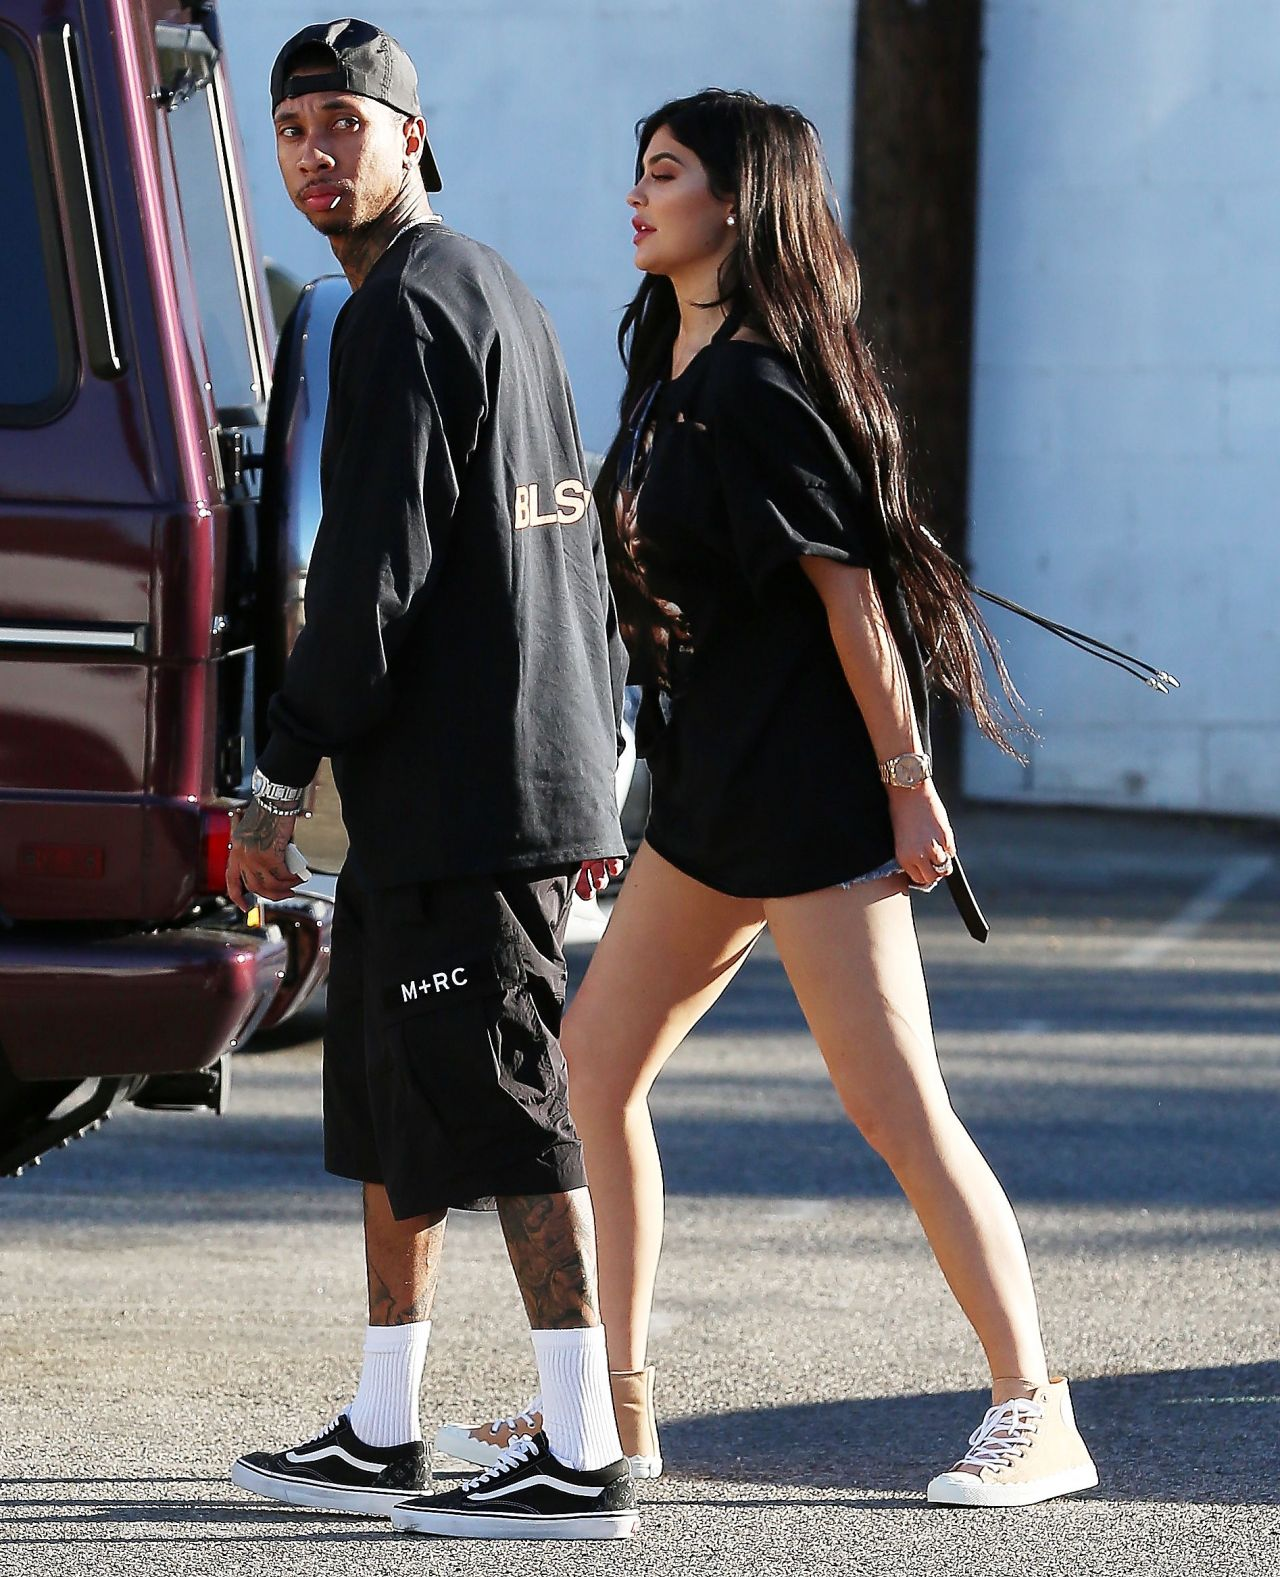 Kylie Jenner and Tyga at Kabuki Restaurant in Los Angeles